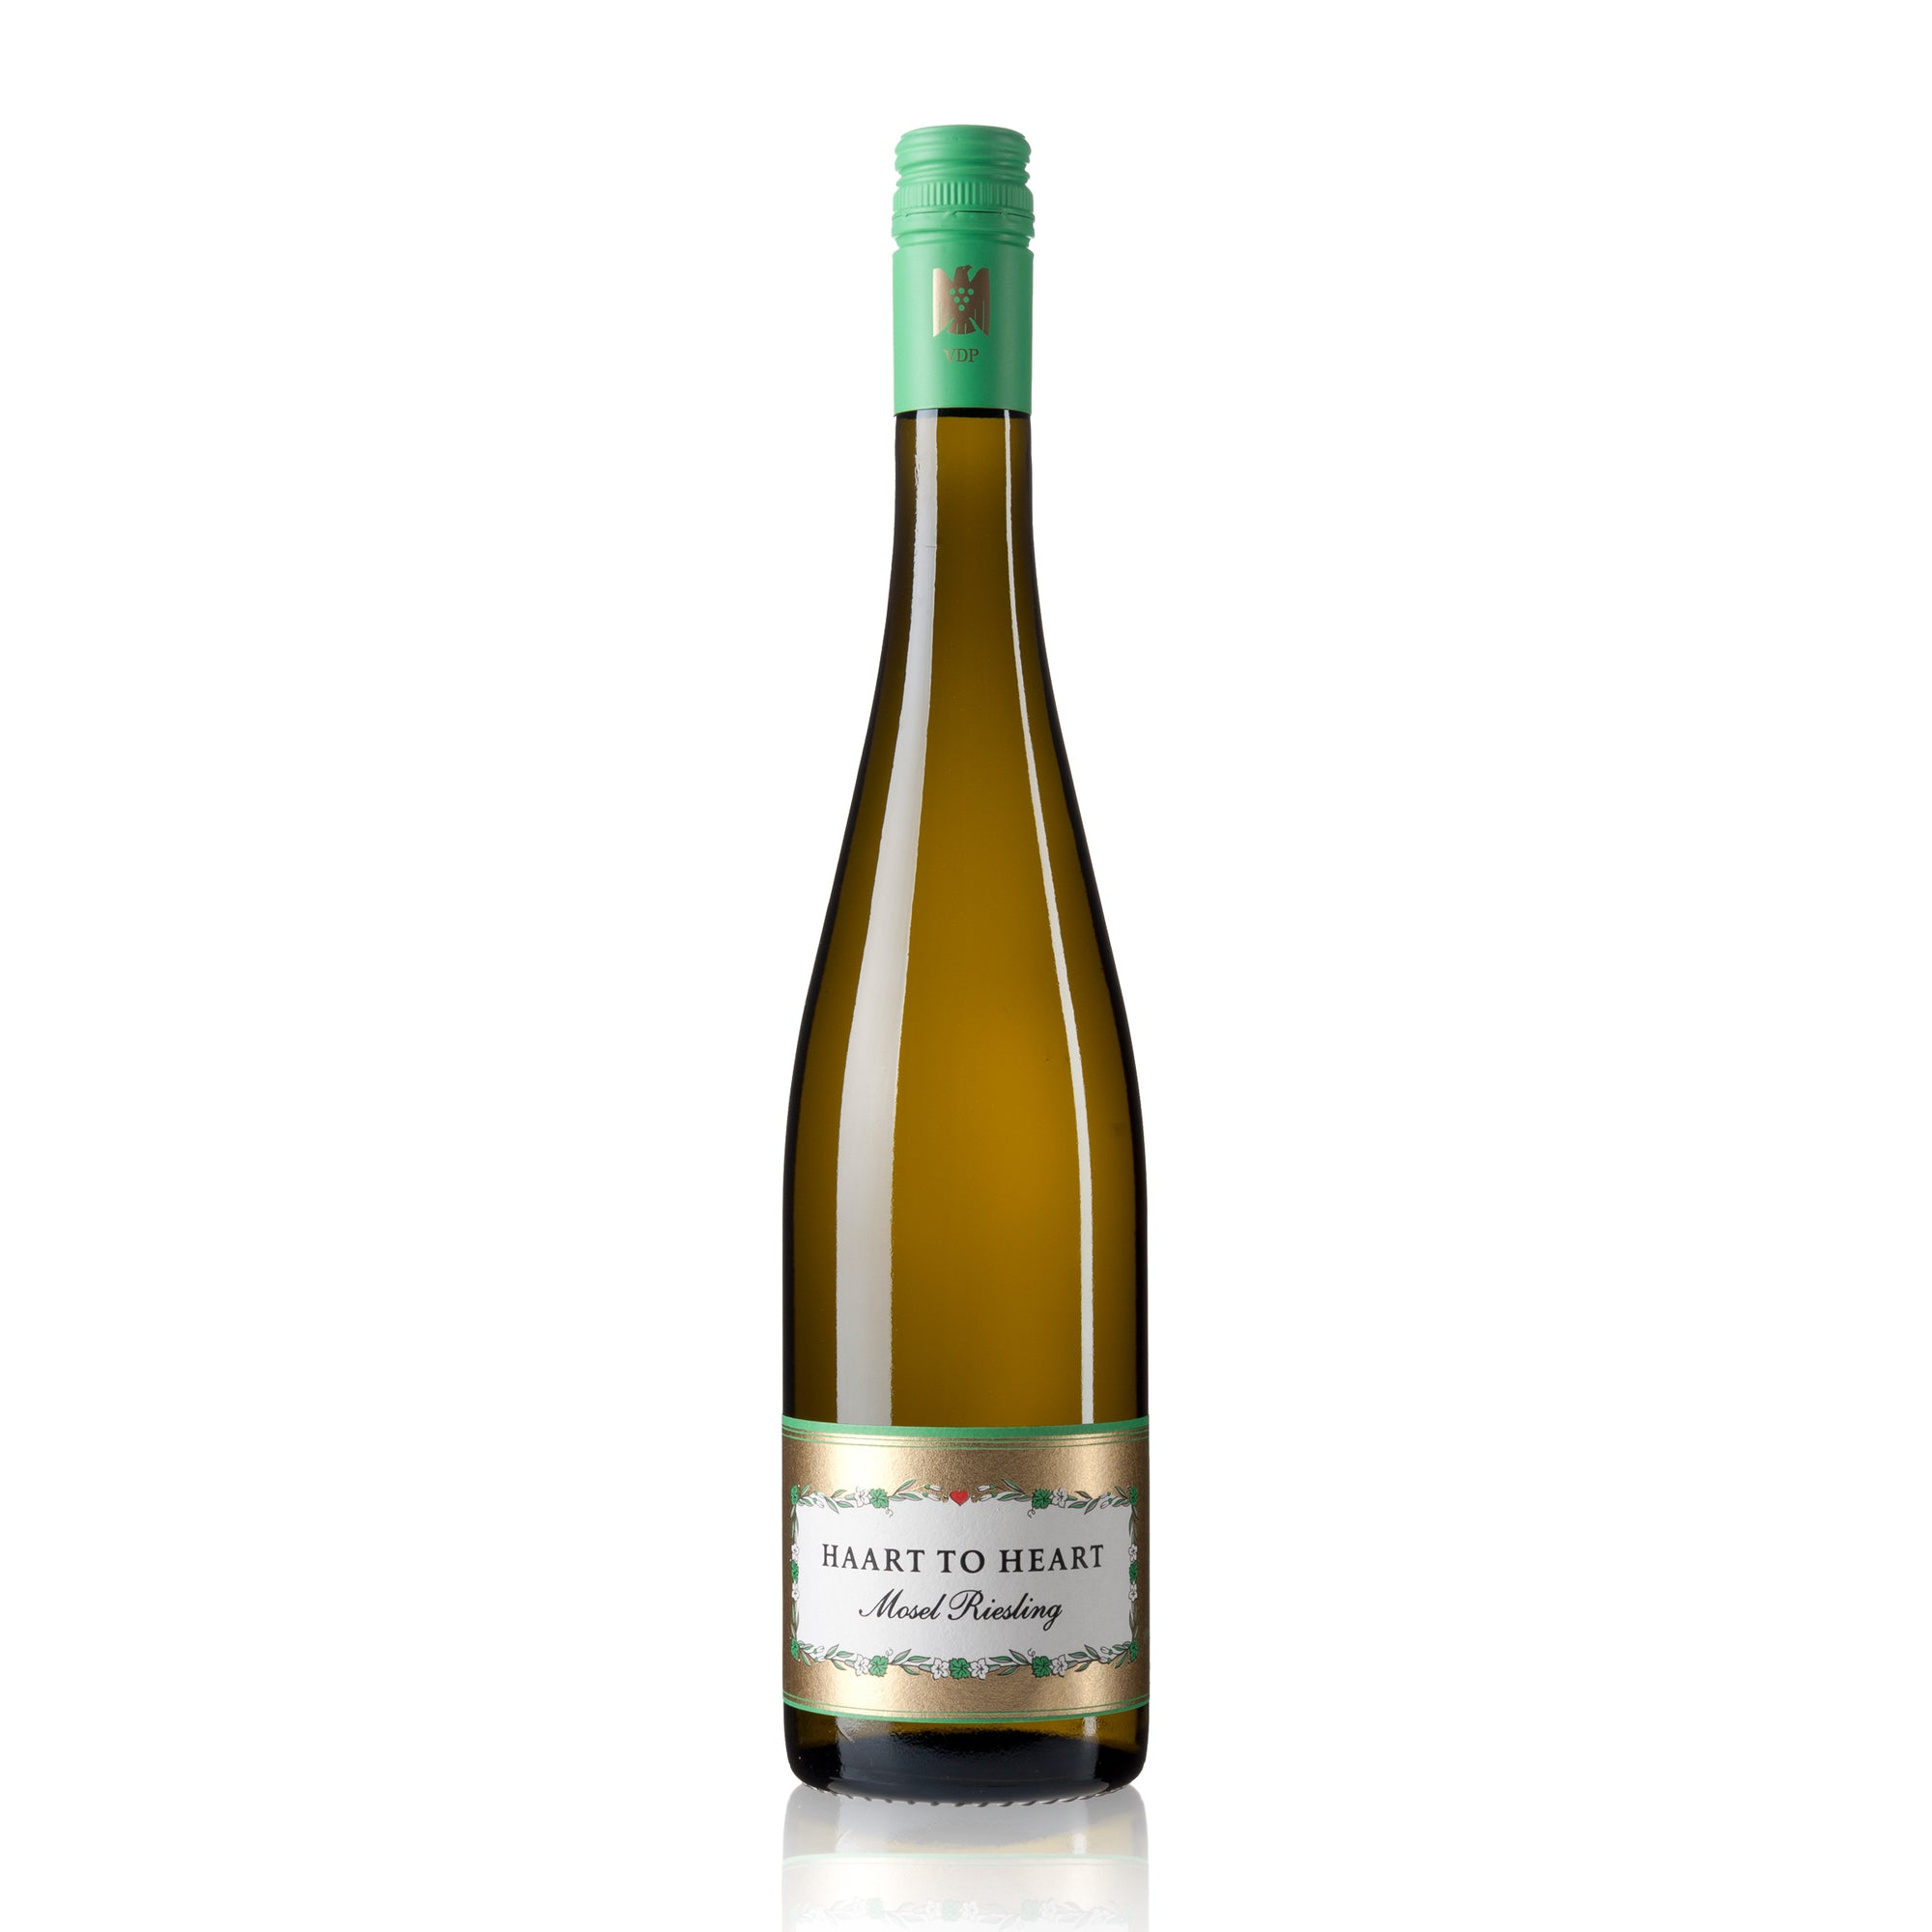 Selected Wine - Weingut Reinhold Haart, Haard to heart Mosel Riesling 2018